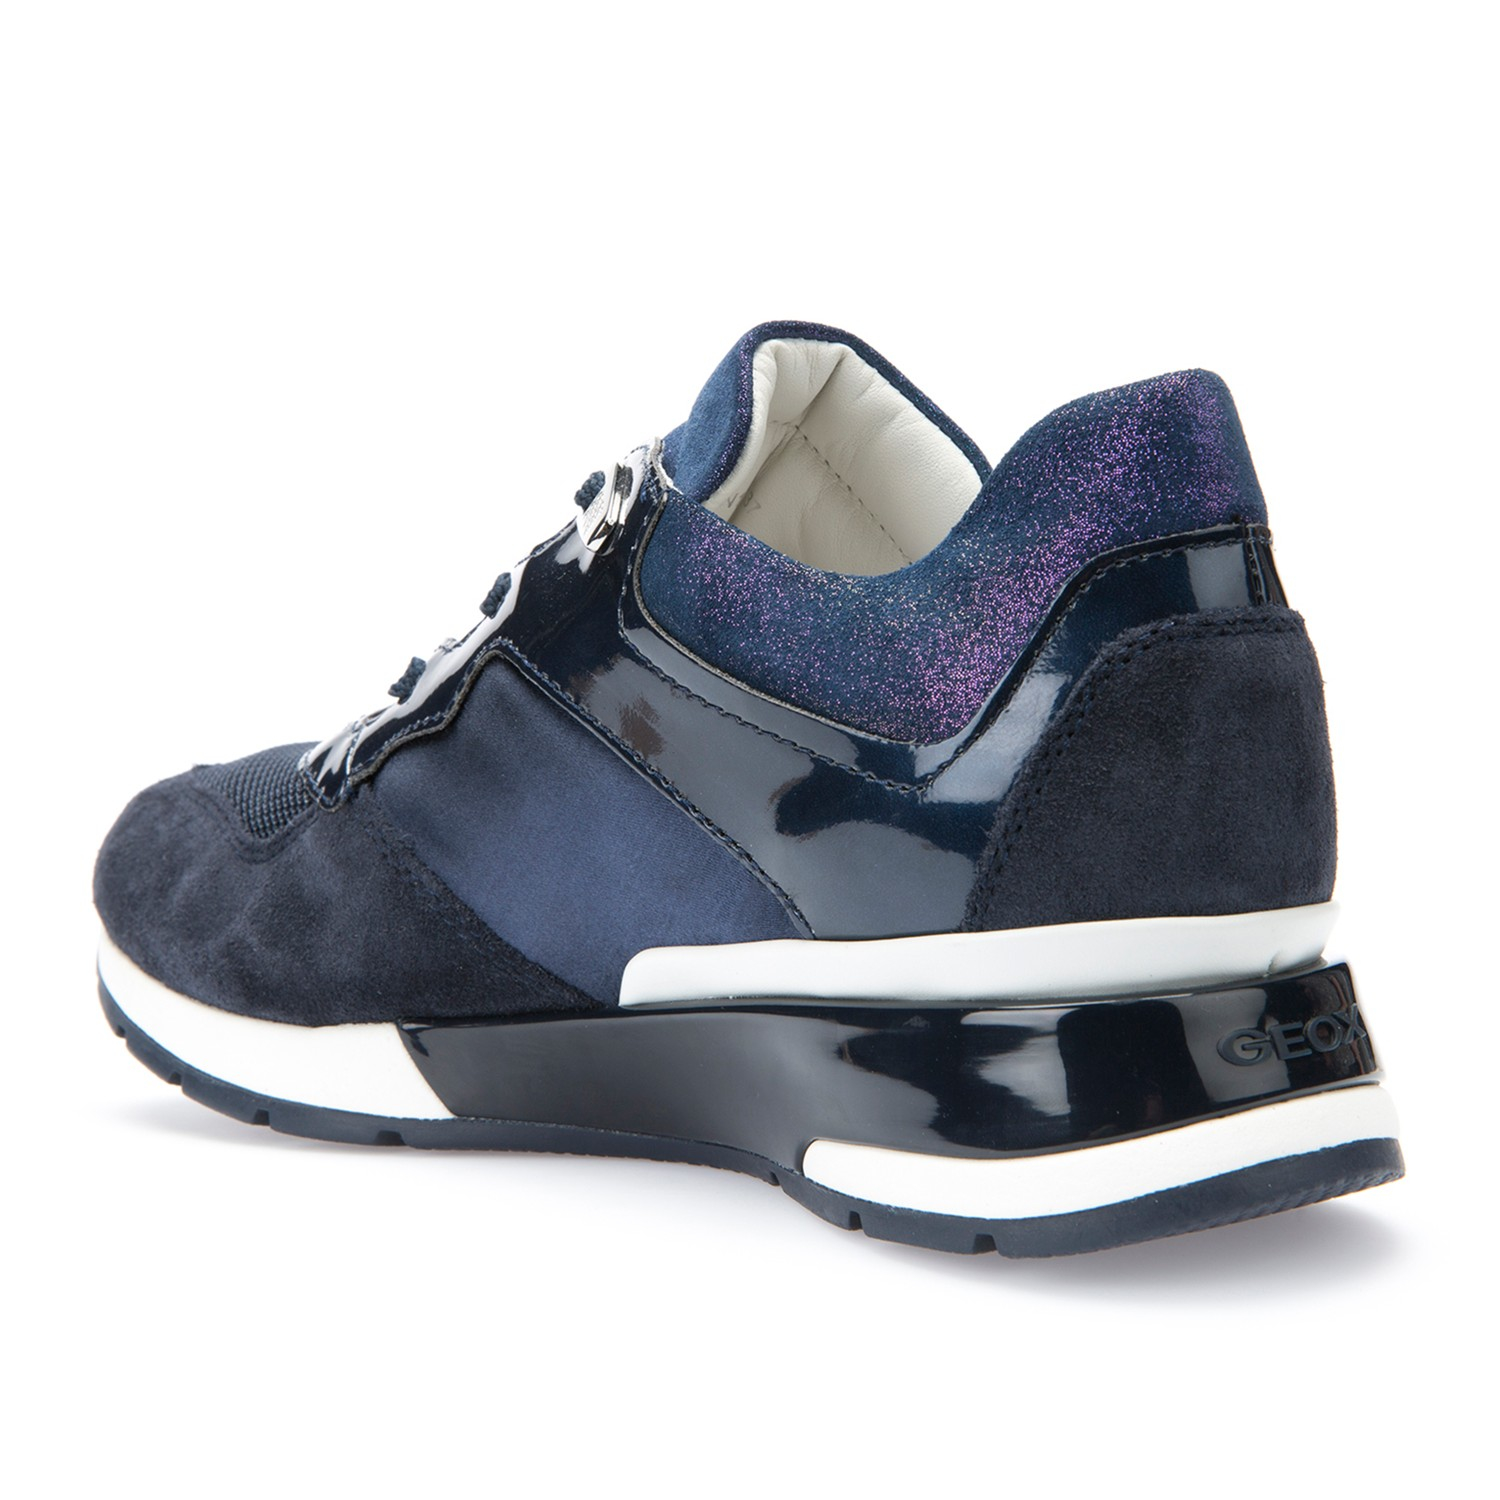 2ad17d09660c Geox Shahira Lace Up Trainers in Blue - Lyst